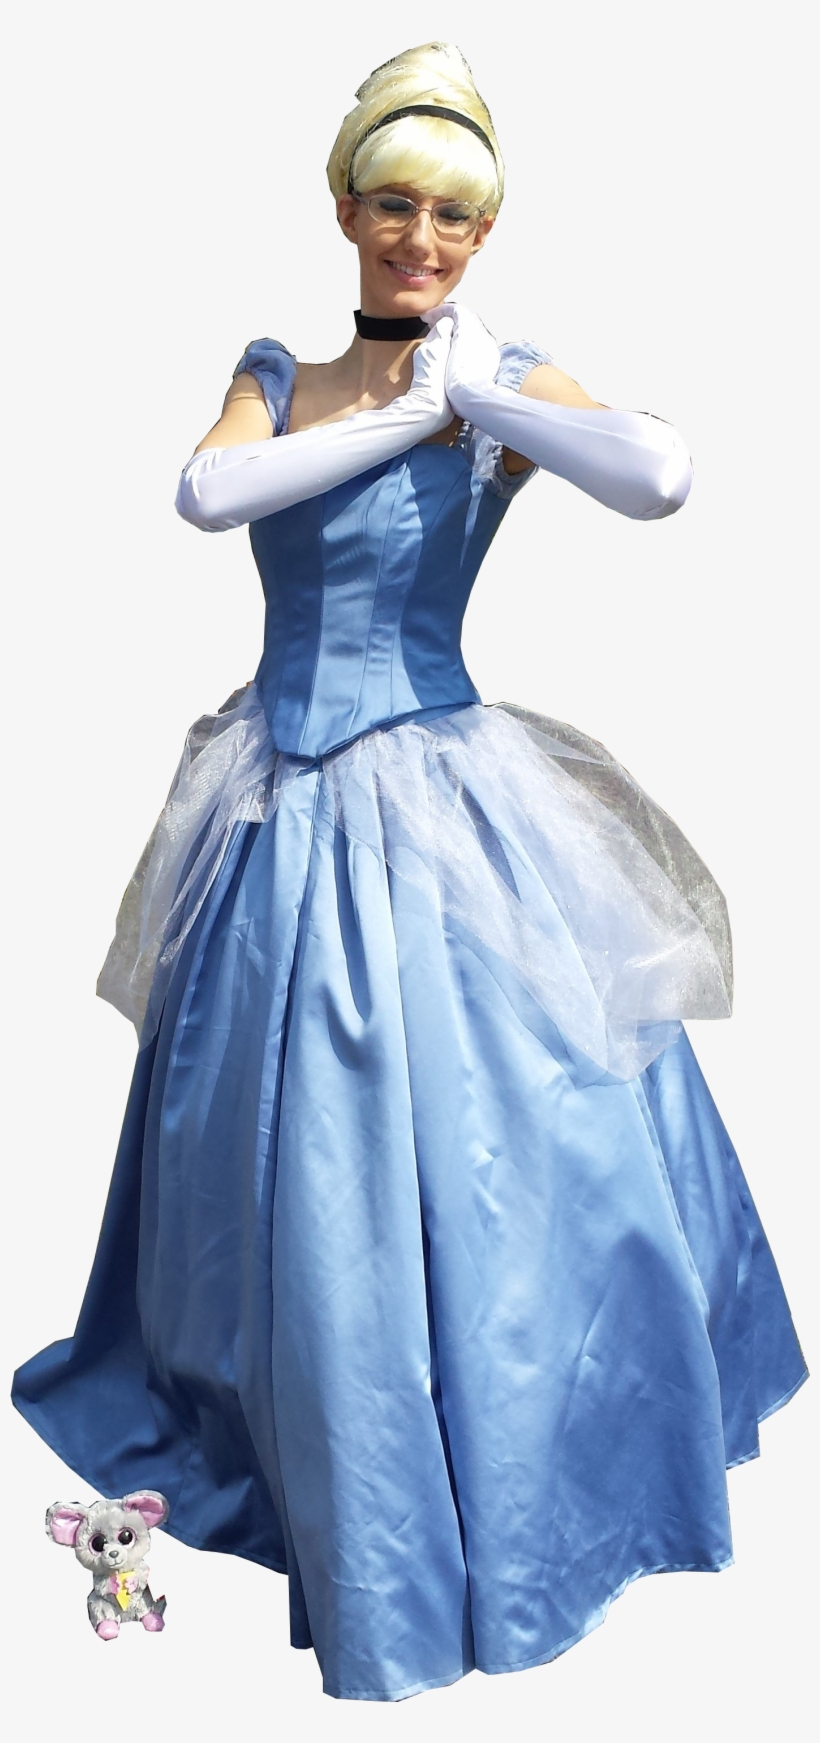 2017 Time Travel Costumes Cinderella Gown Dress Costume - Disney Princess Cosplay Png, transparent png #332006